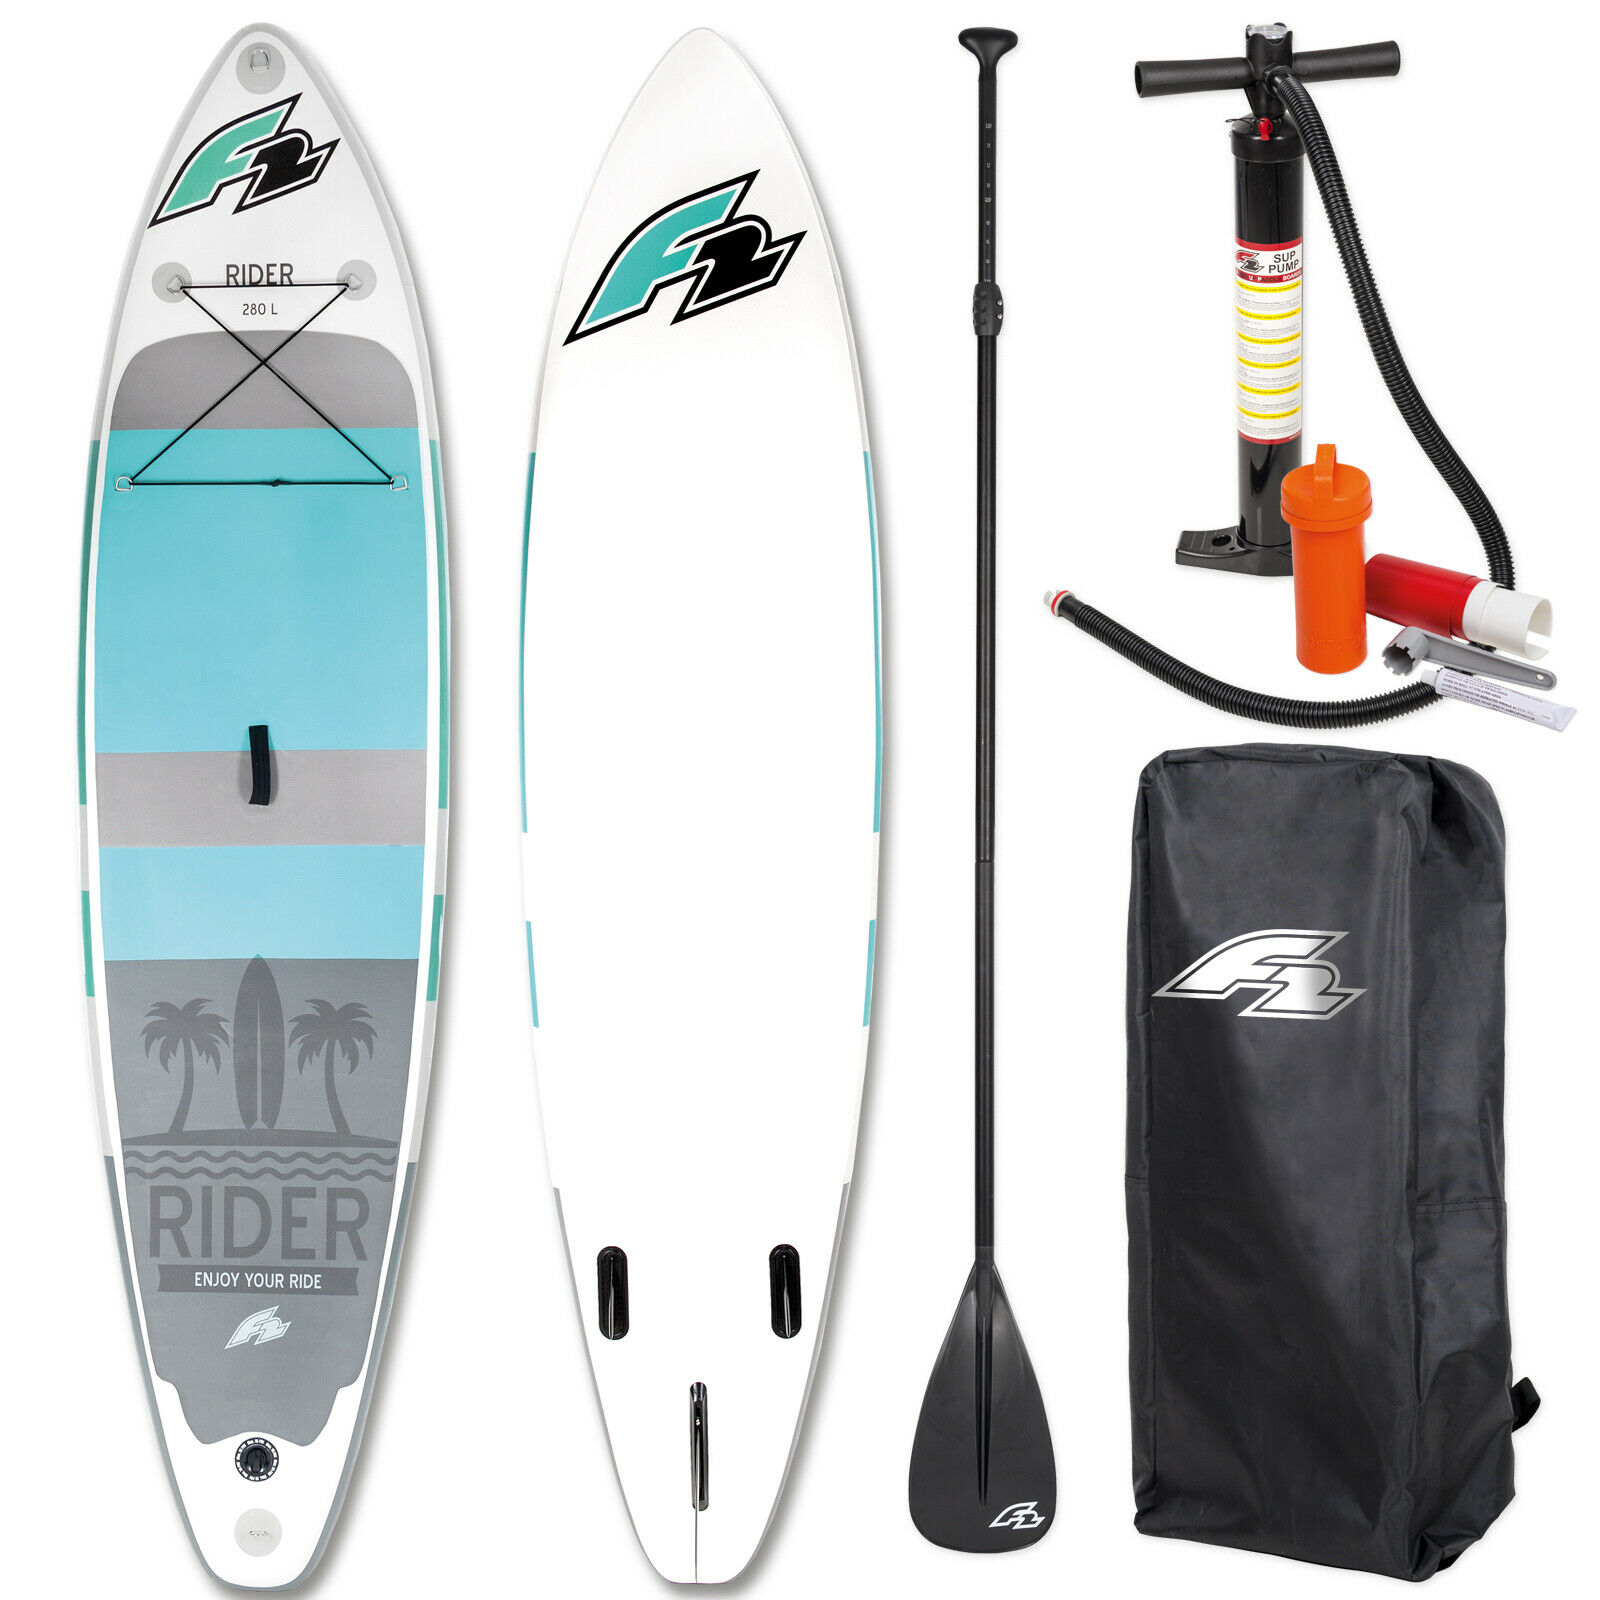 F2 Rider inflatable SUP board